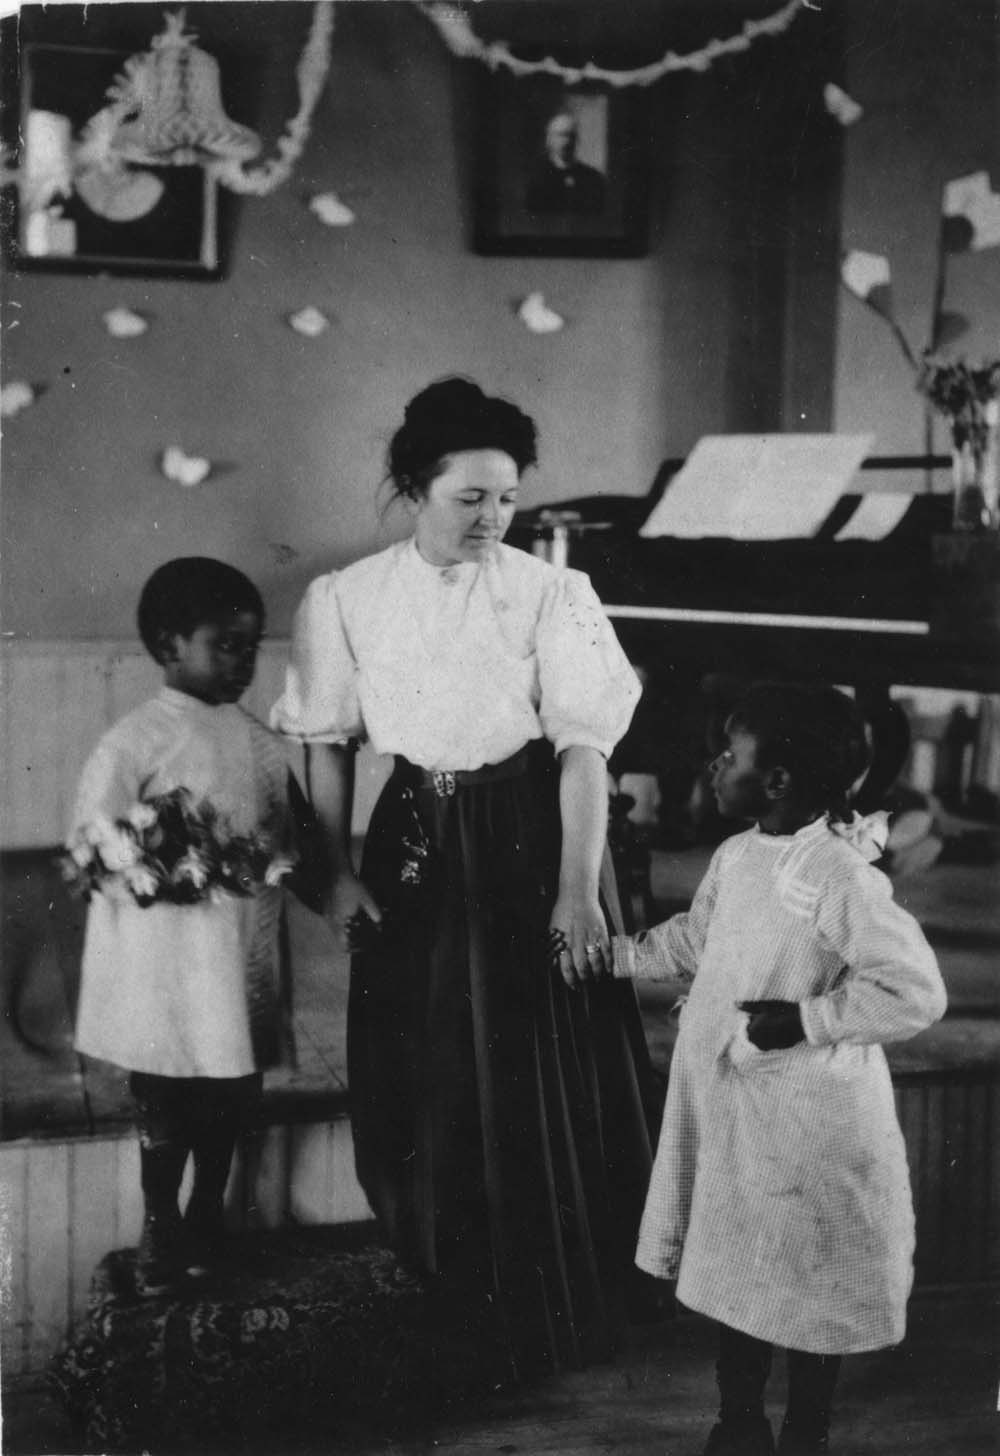 June Chapman with students